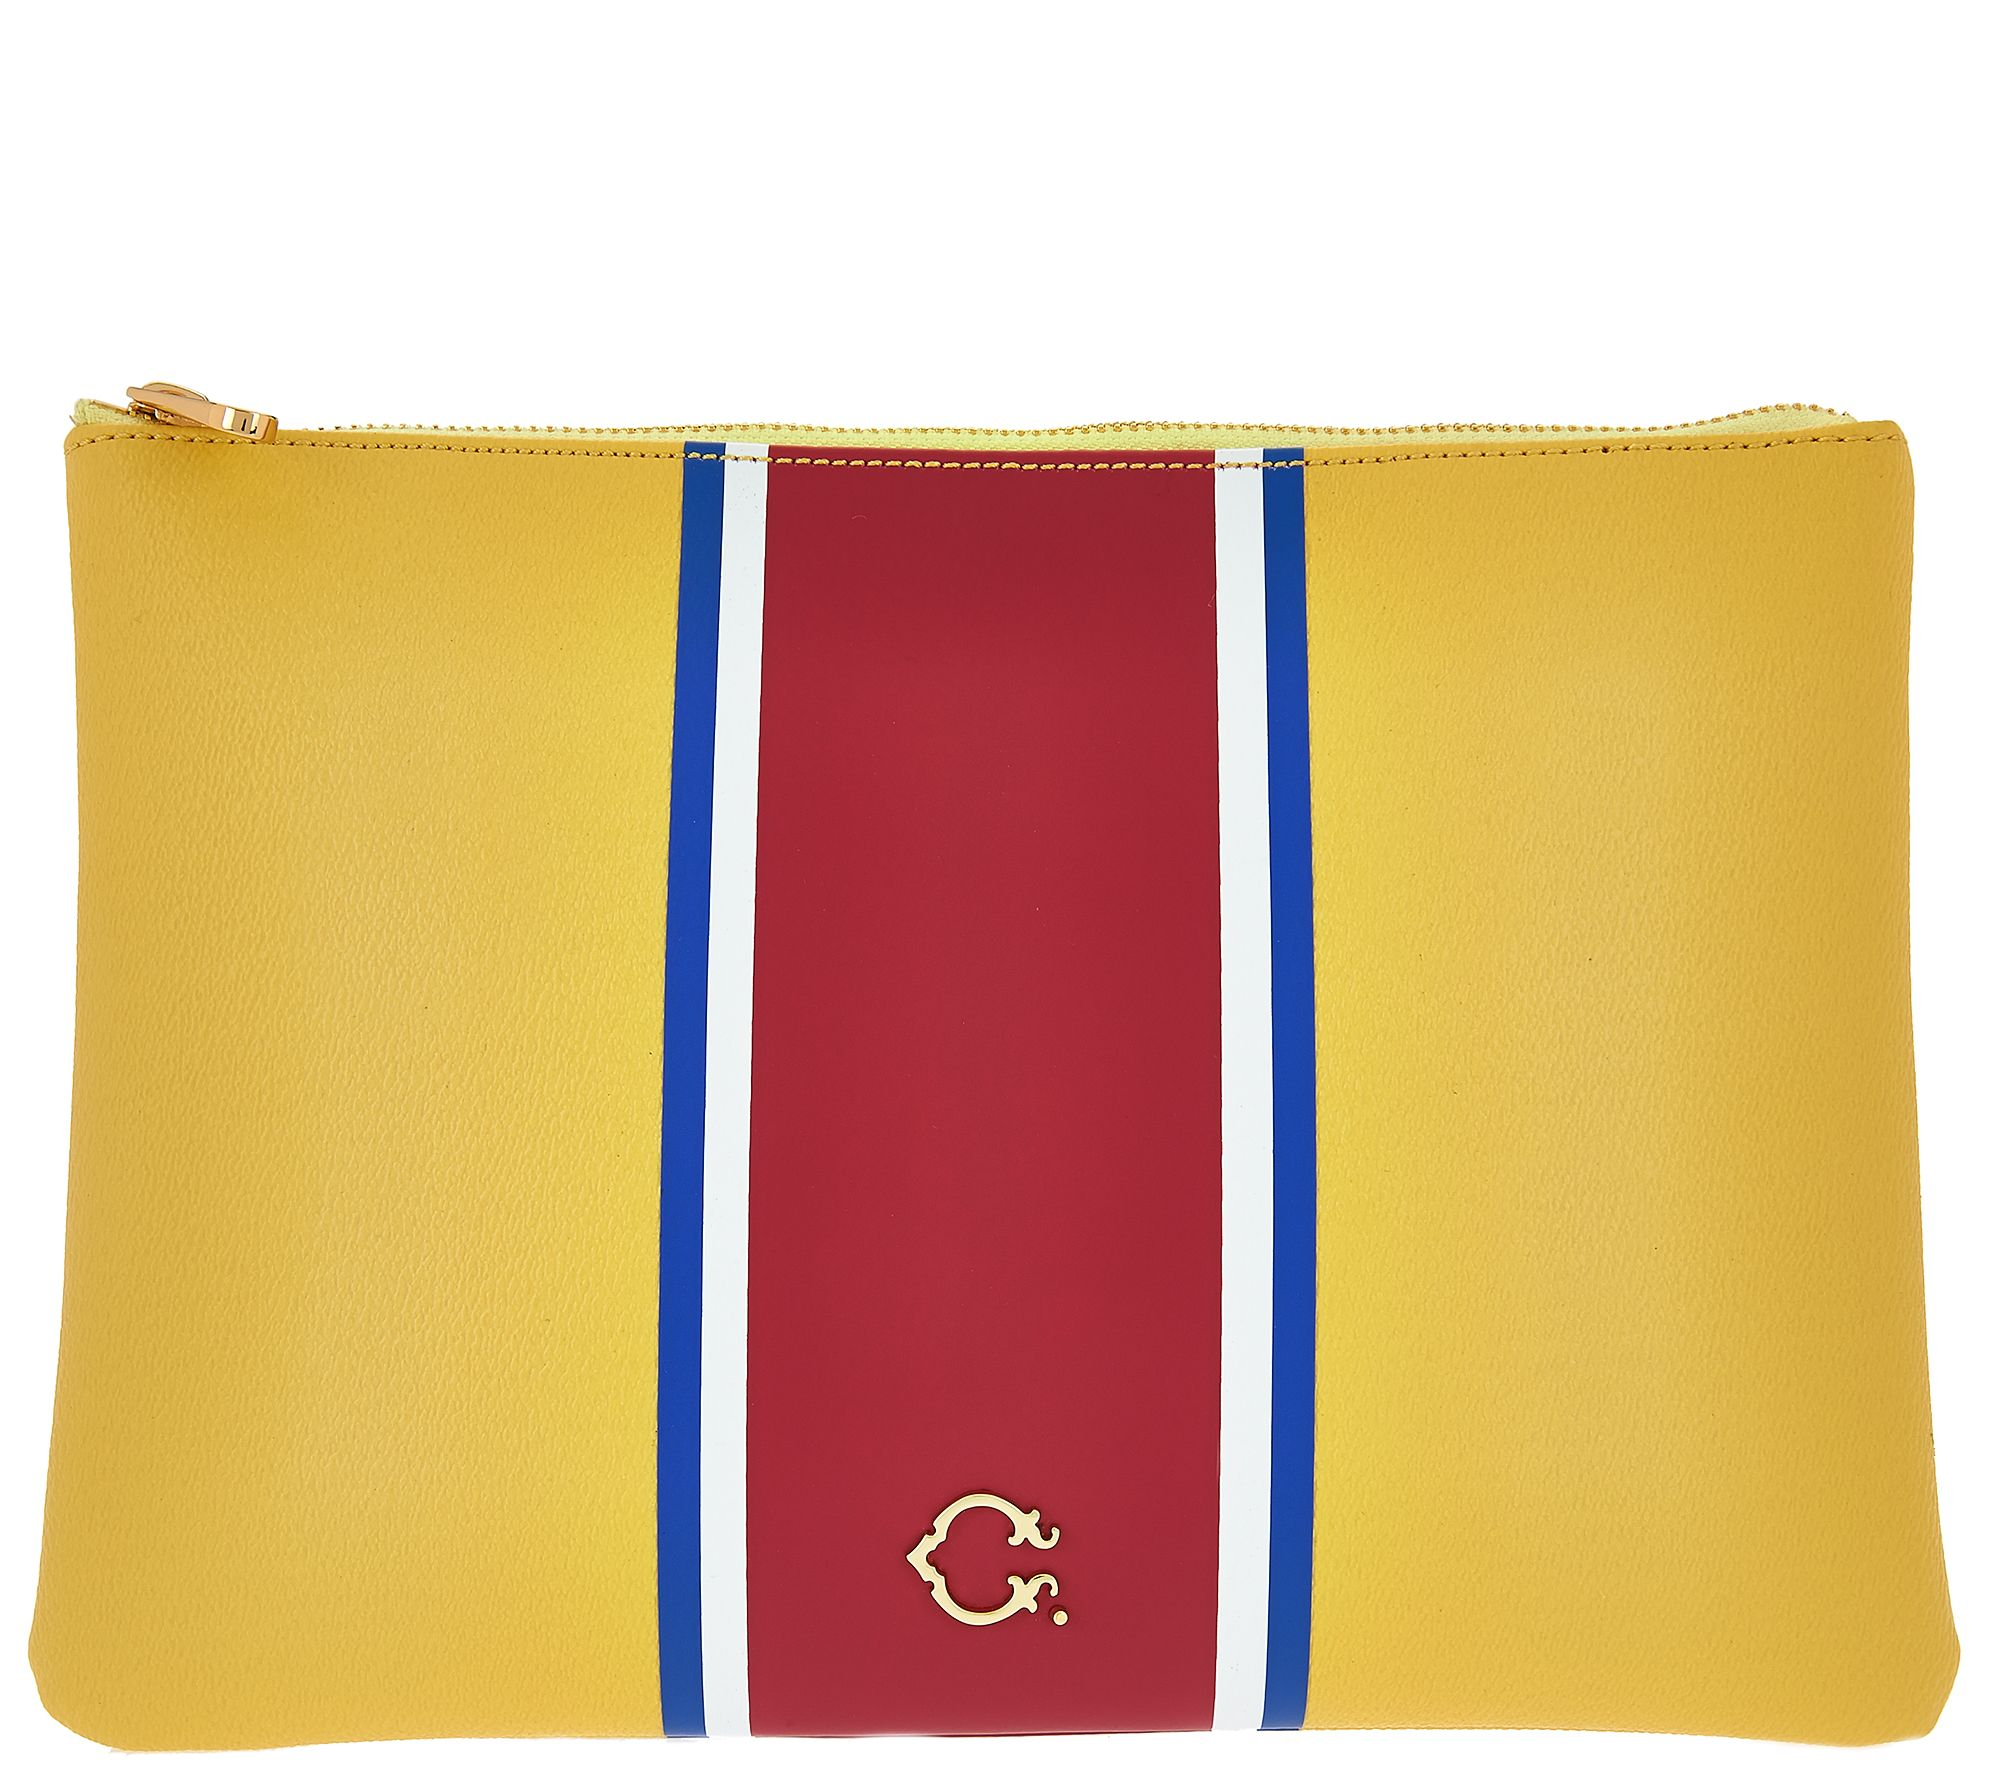 C. Wonder Large Racing Stripe Printed Zip Top Pouch with Hardware - A278279 — QVC.com